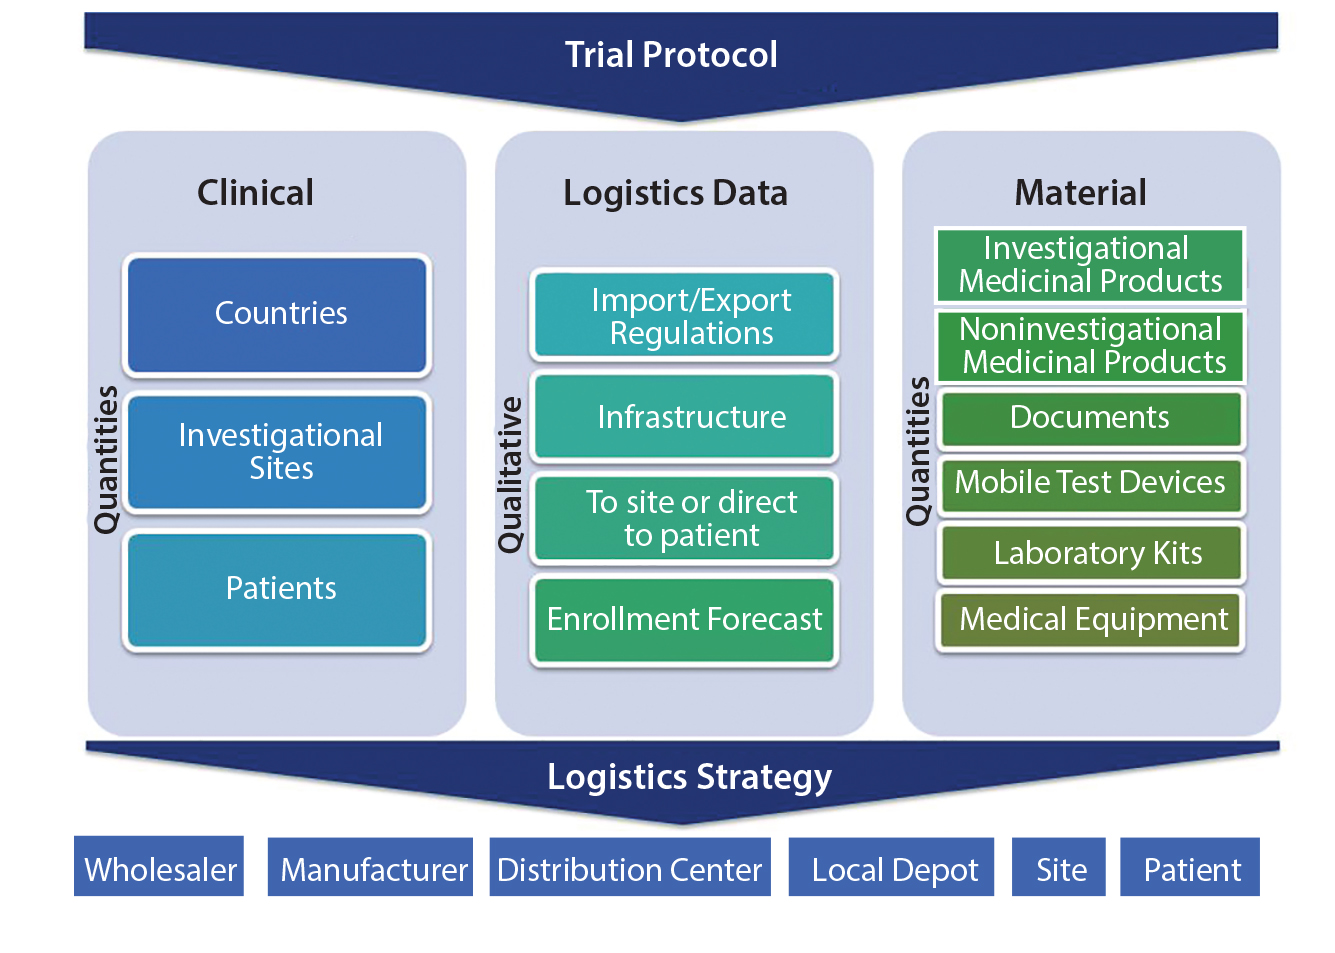 Clinical Supply Chain: A Four-Dimensional Mission